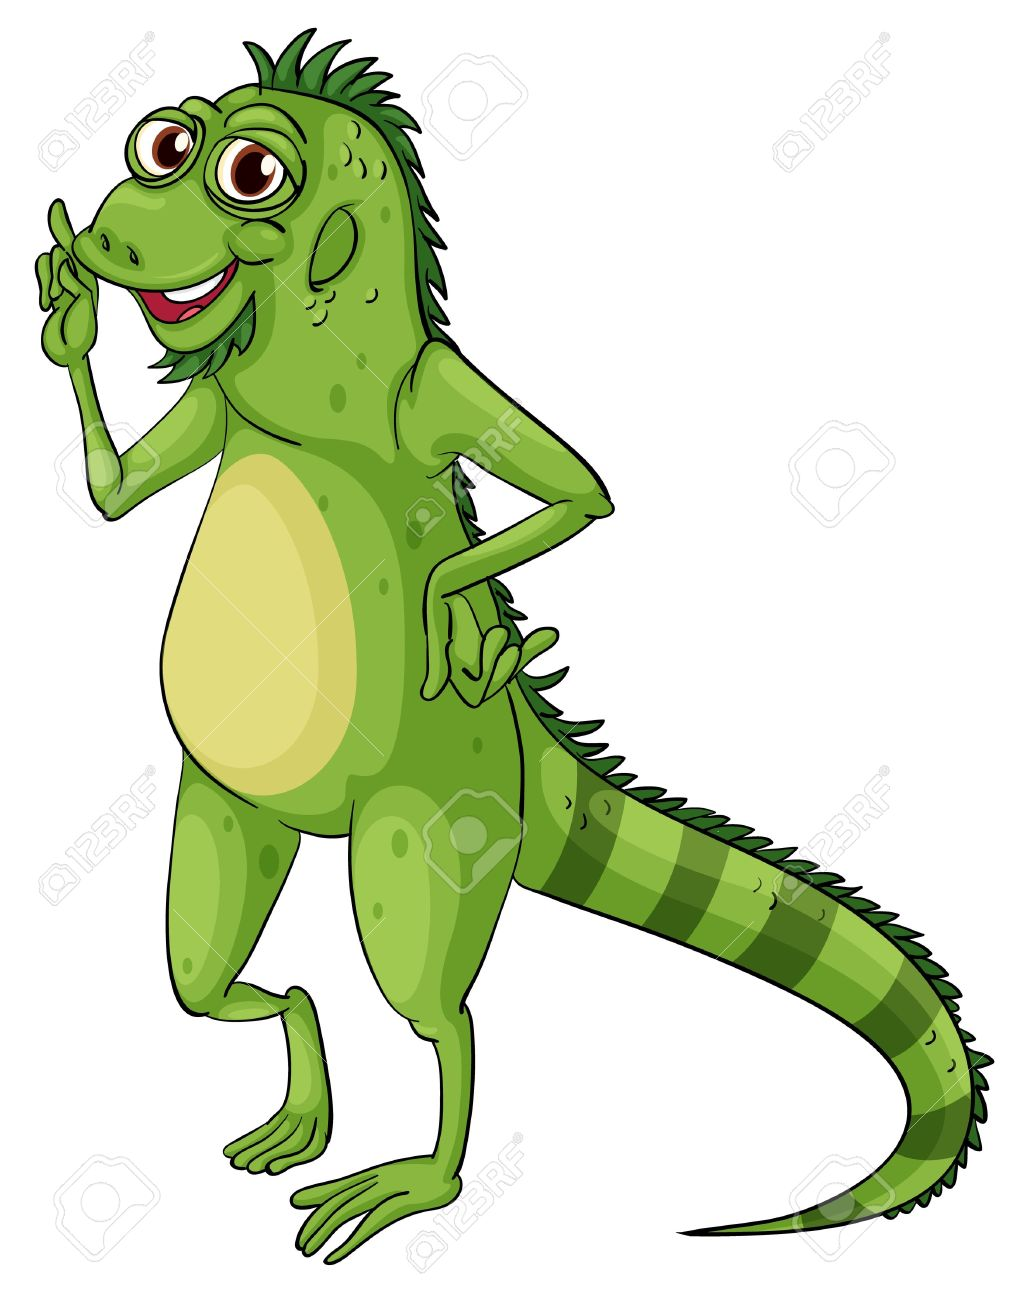 Green Iguana clipart #7, Download drawings